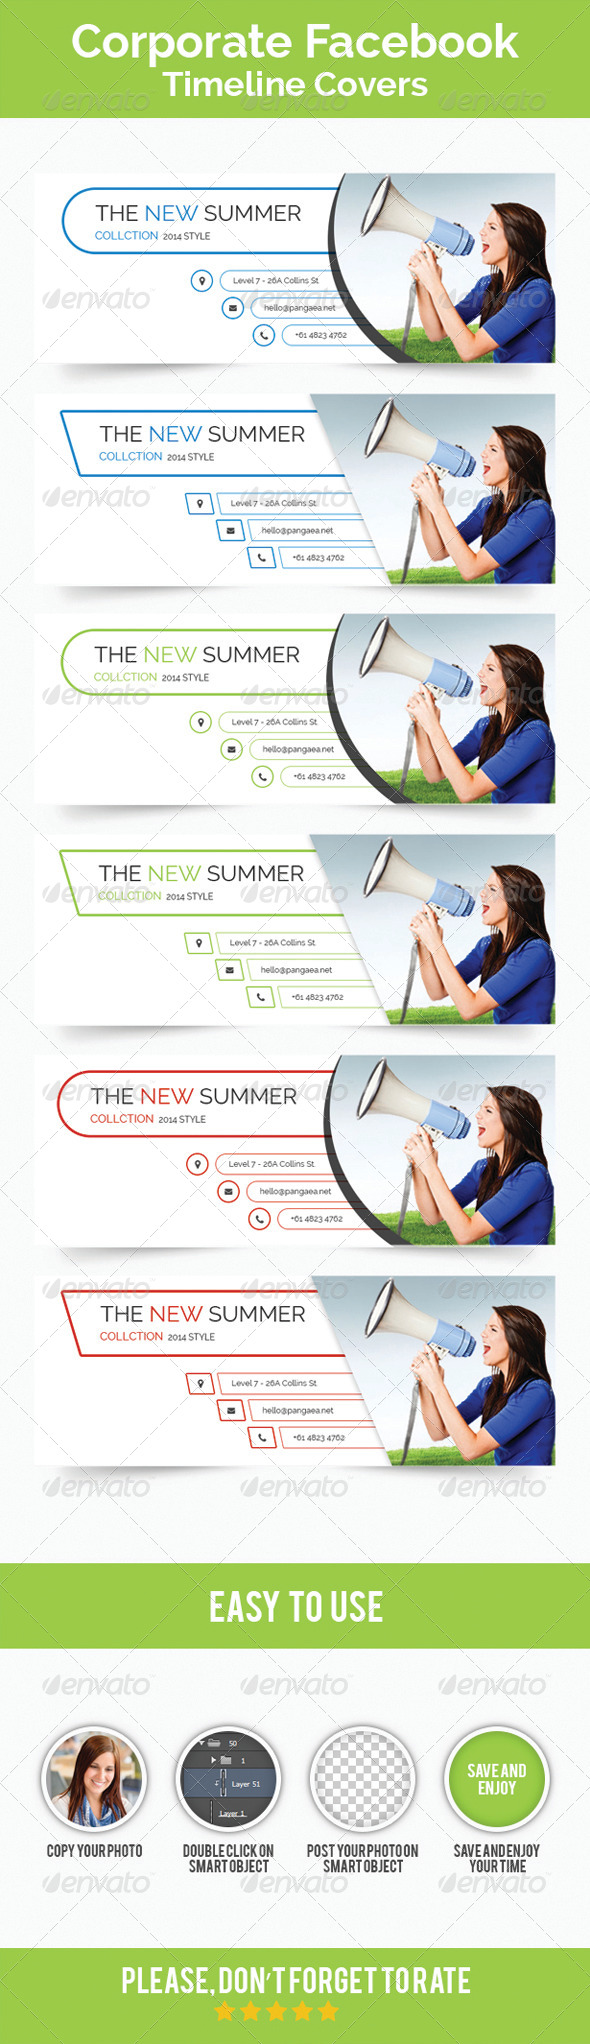 GraphicRiver Corporate Facebook Timeline Covers 8178203